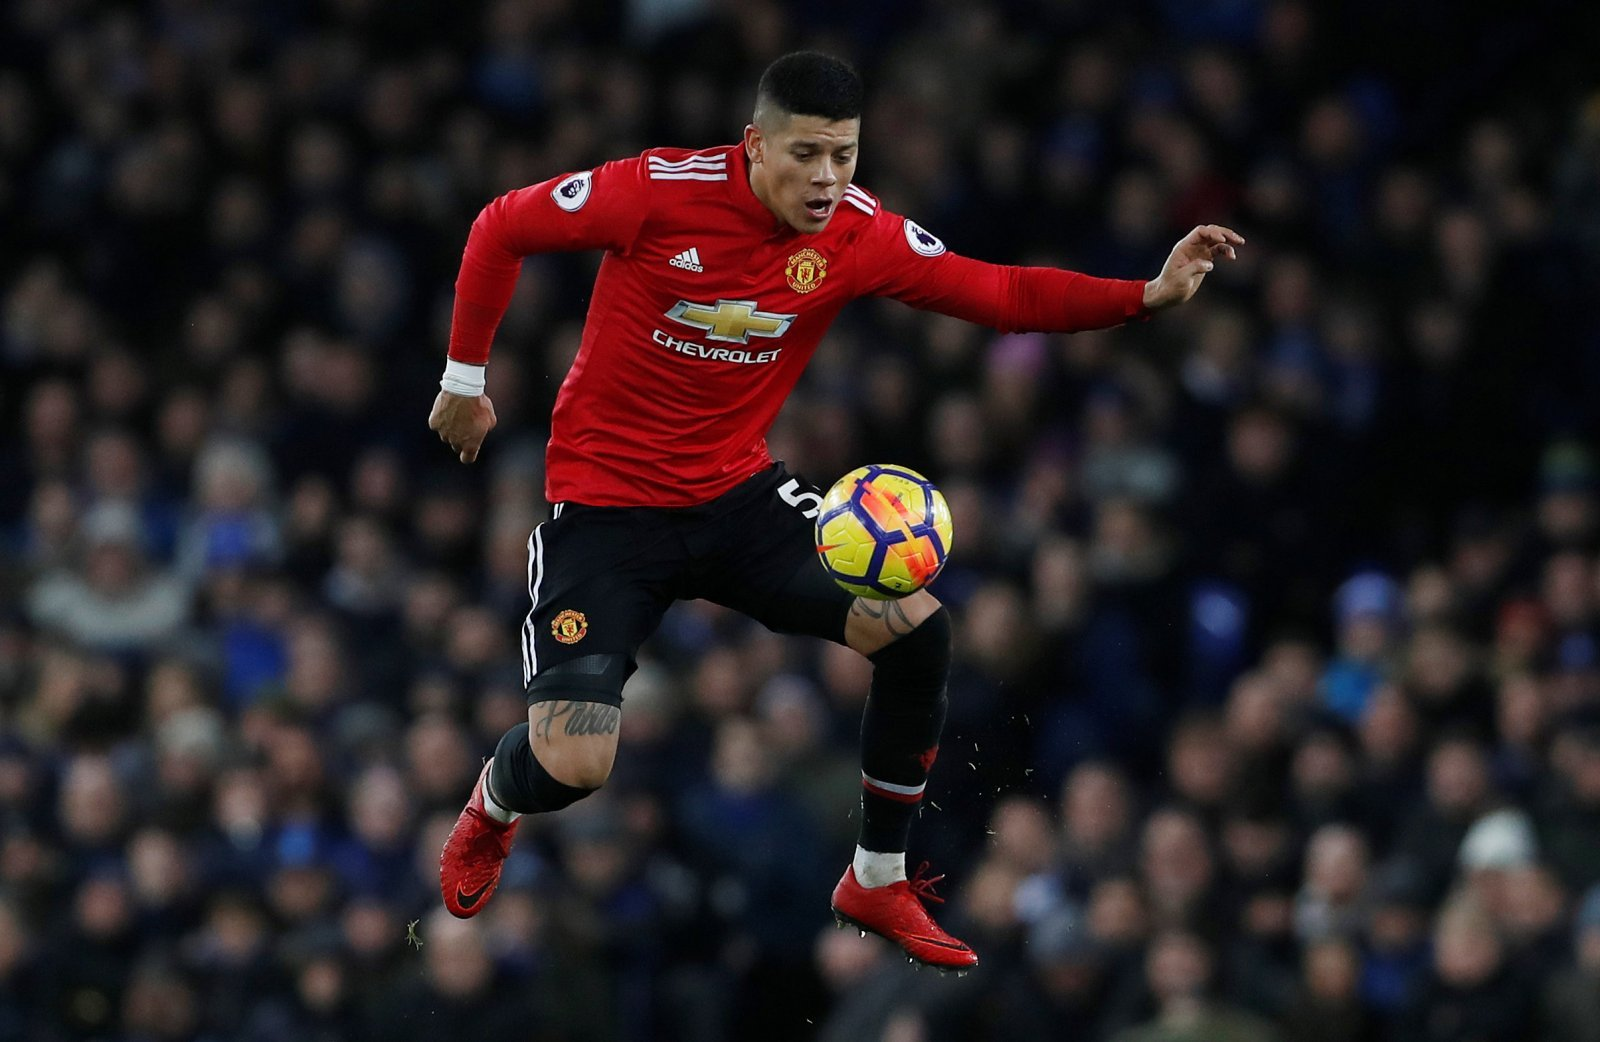 Marcos Rojo was a risk-free signing Everton should have made